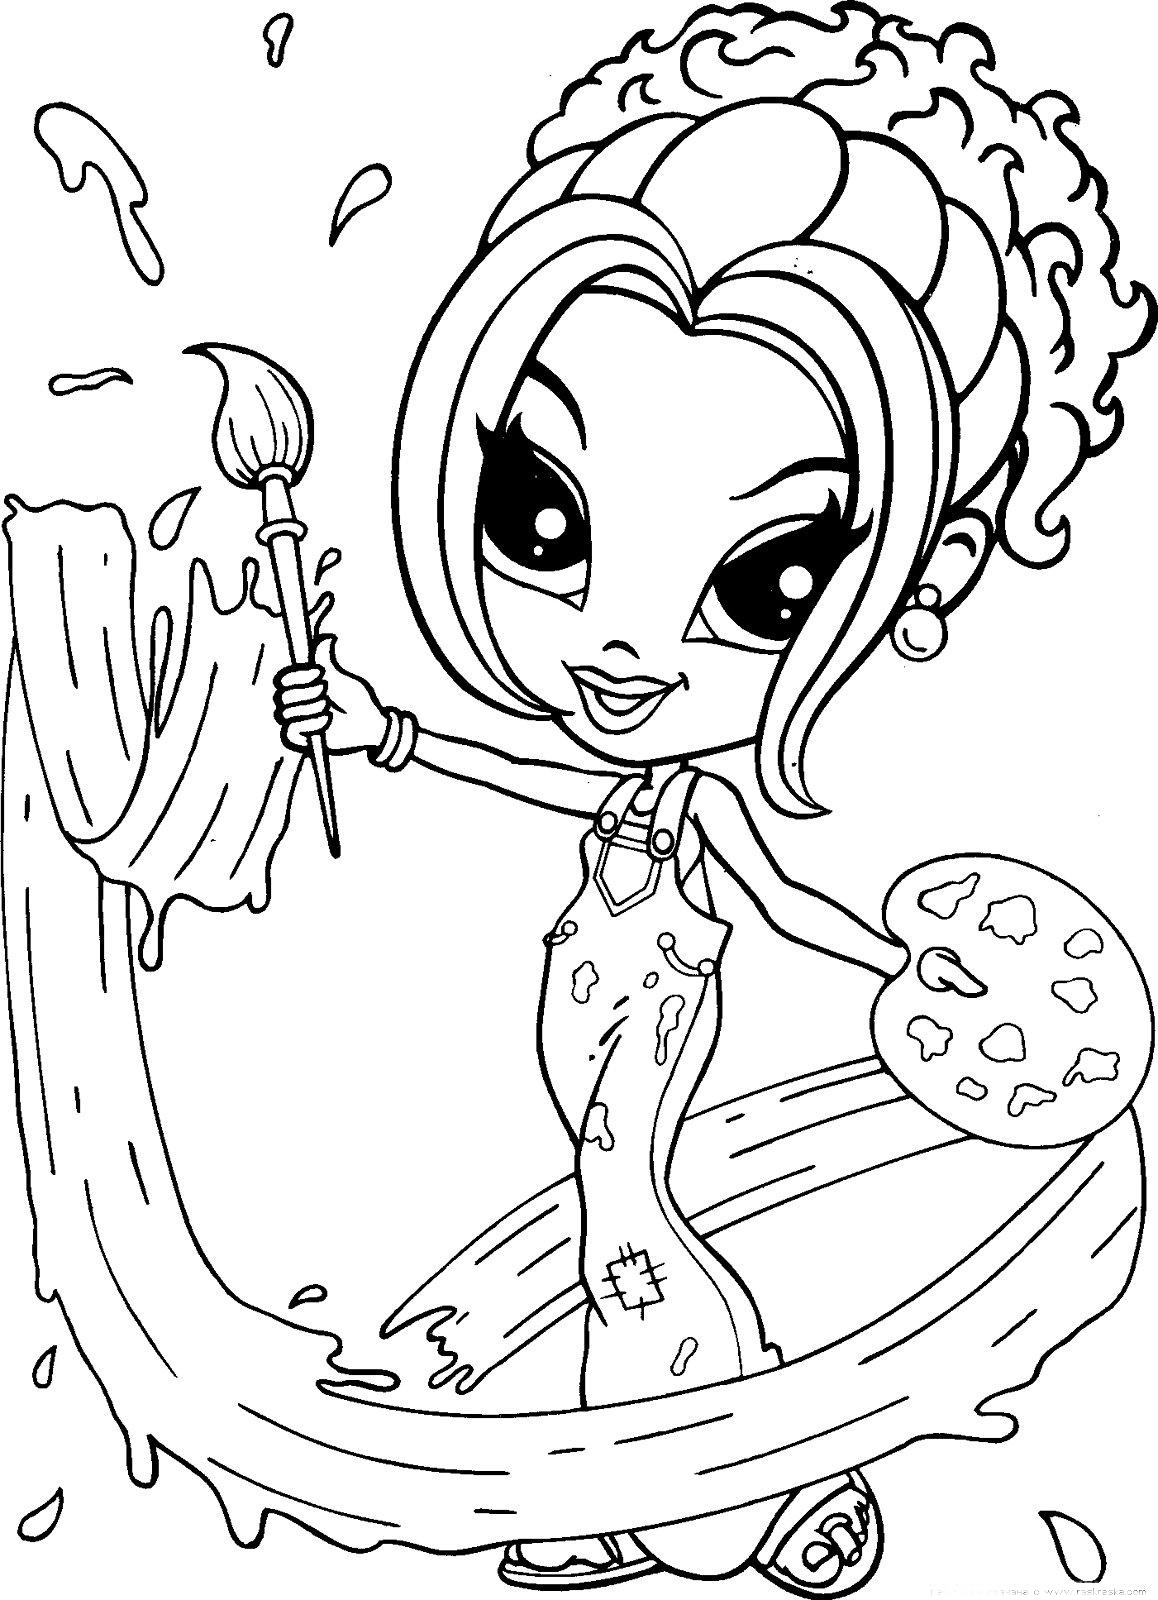 colouring pages to print free lisa frank animals coloring pages download and print for free pages colouring to free print